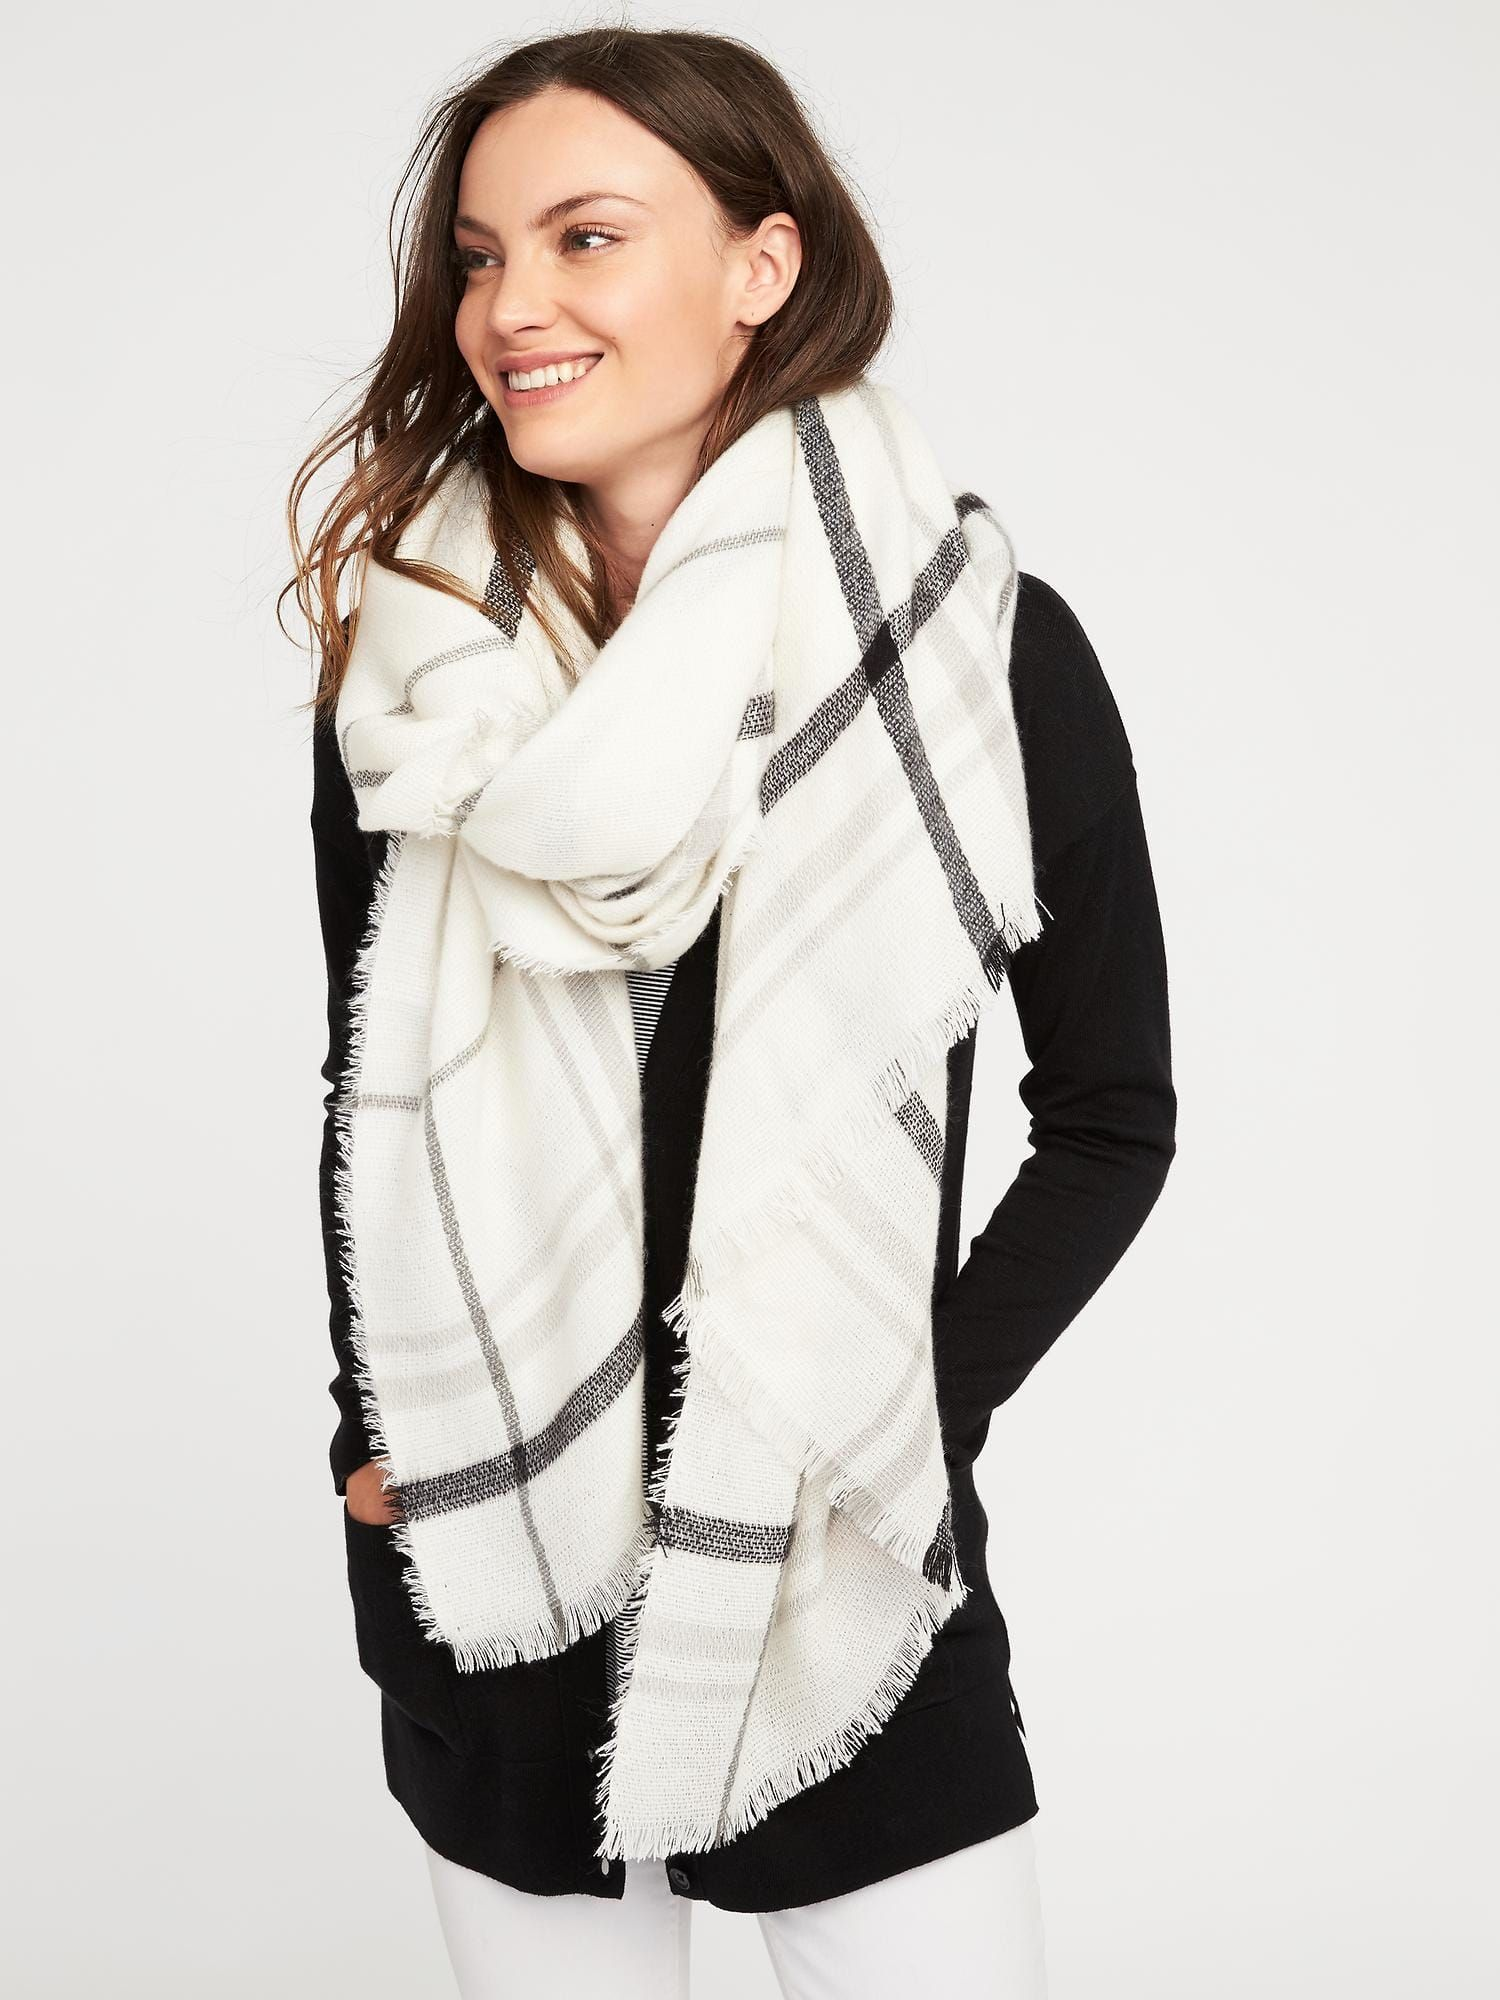 Flannel Blanket Scarf For Women Old Navy White Plaid Scarf